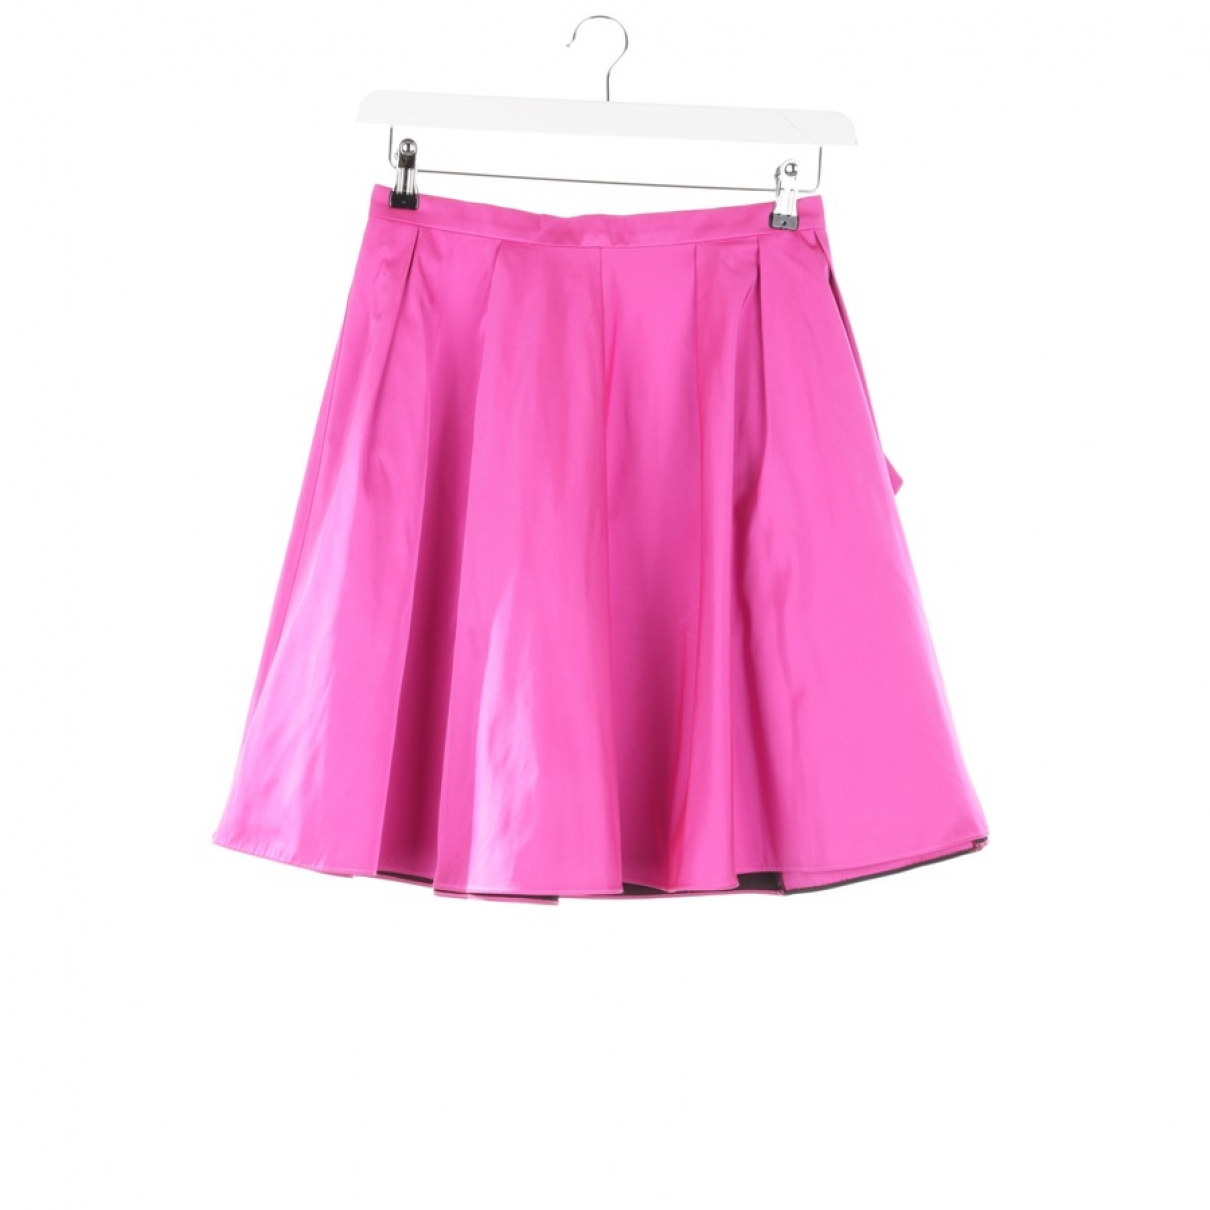 Moschino \N Red Cotton skirt for Women 36 FR